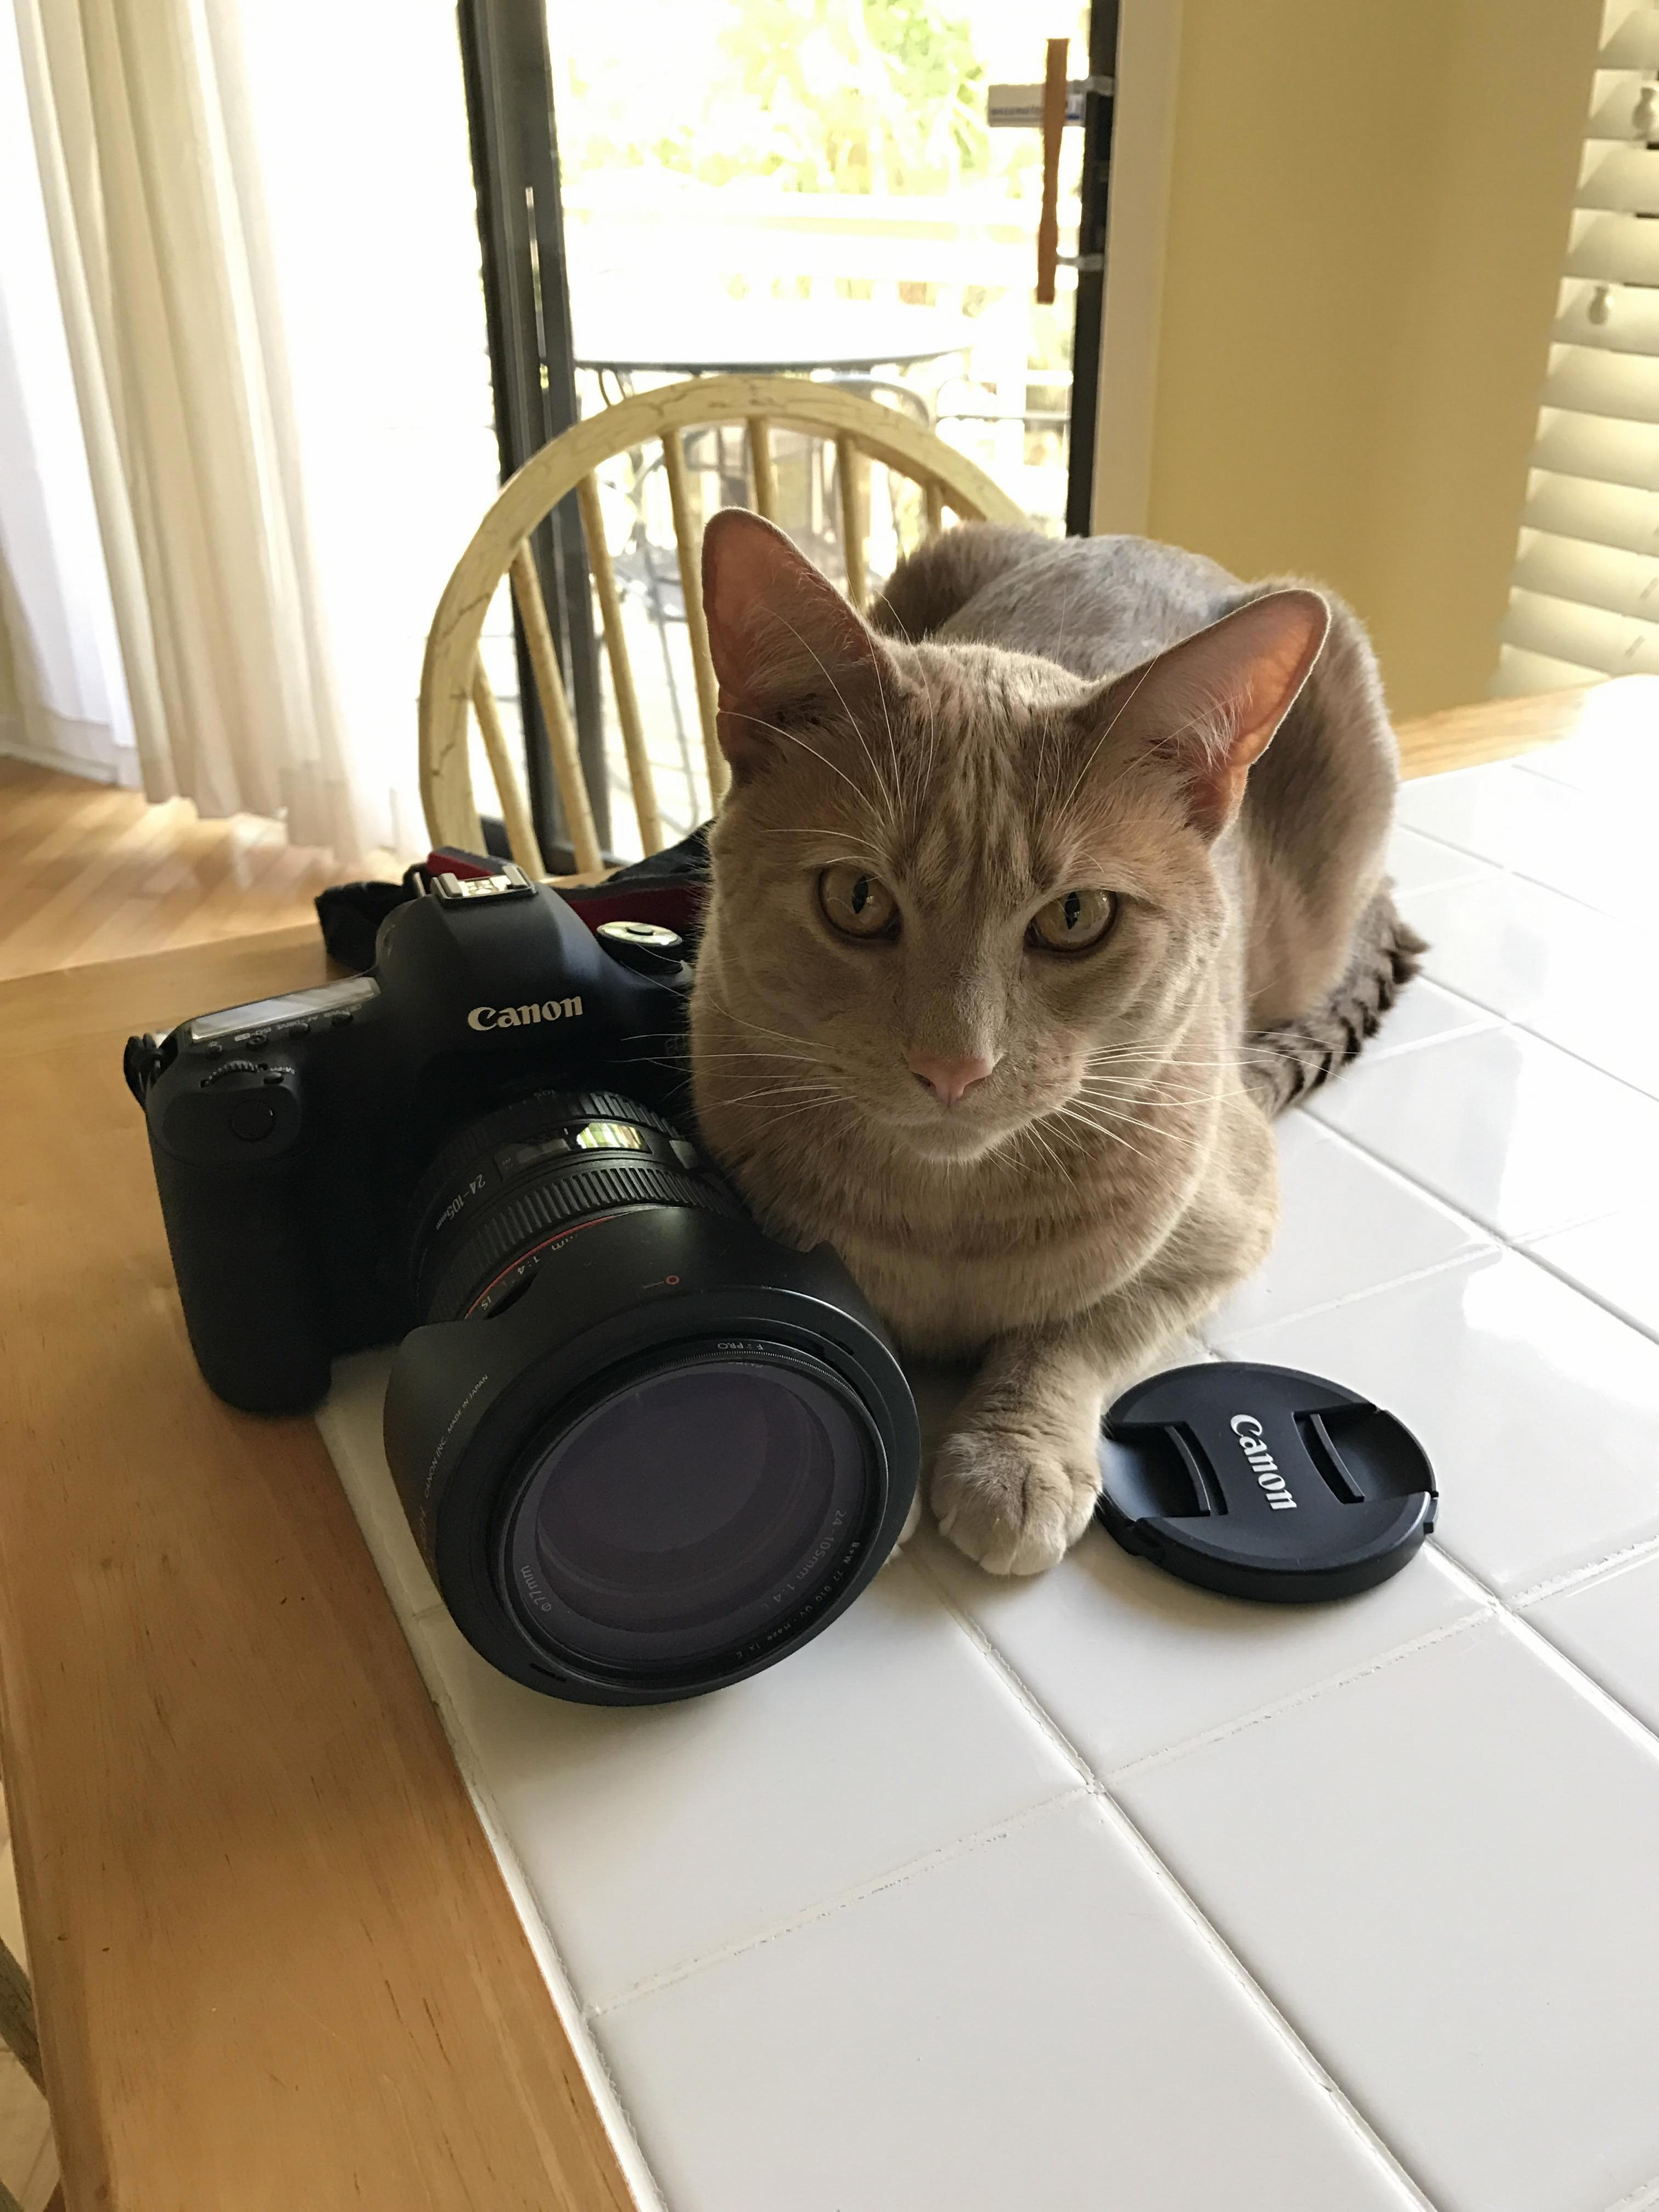 Sunny is an exclusively canon photographer